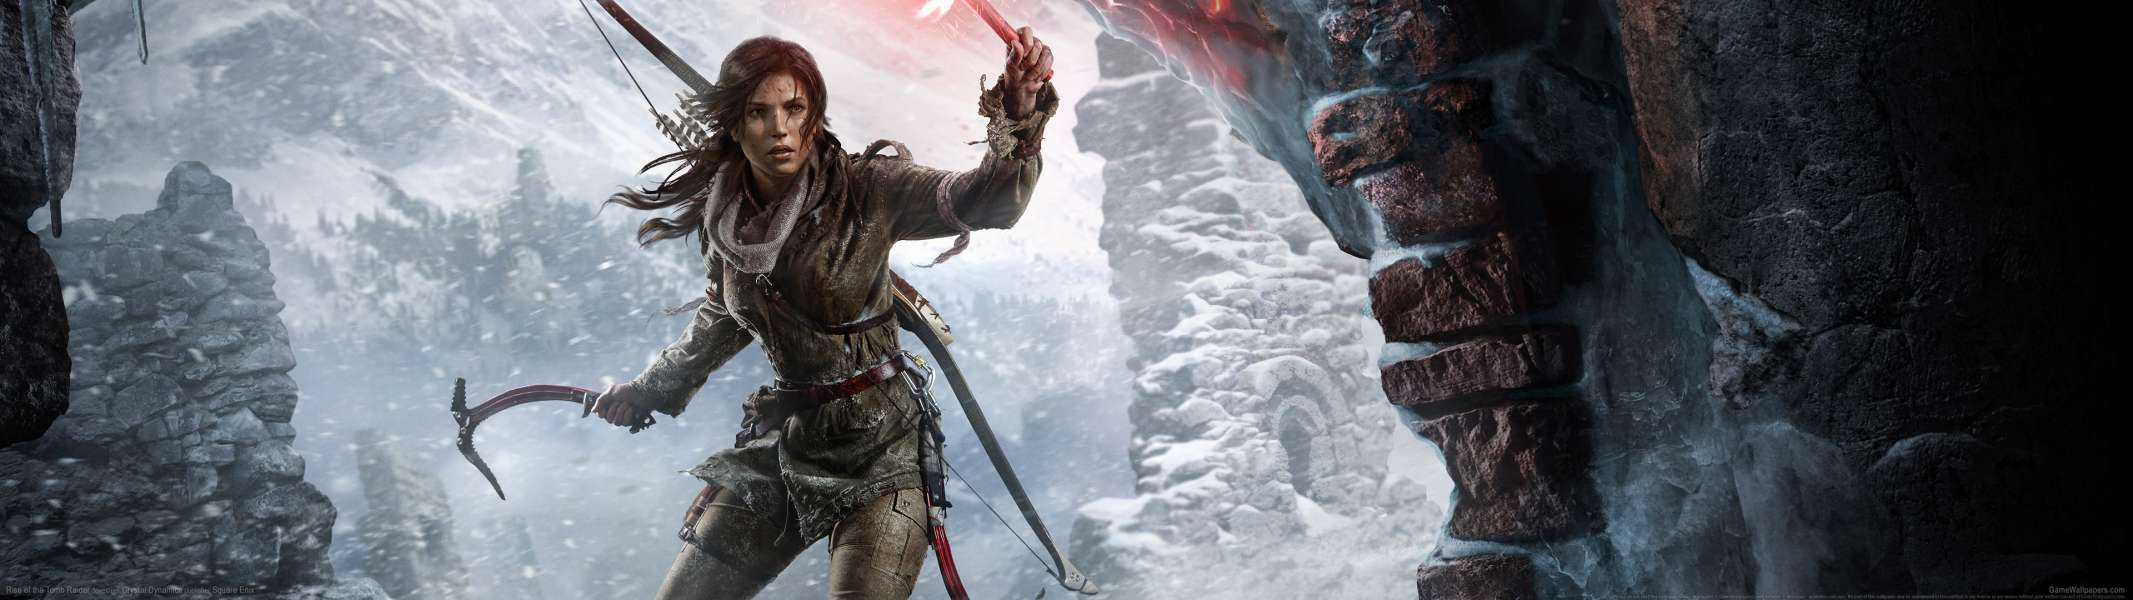 Rise of the Tomb Raider dual screen fondo de escritorio